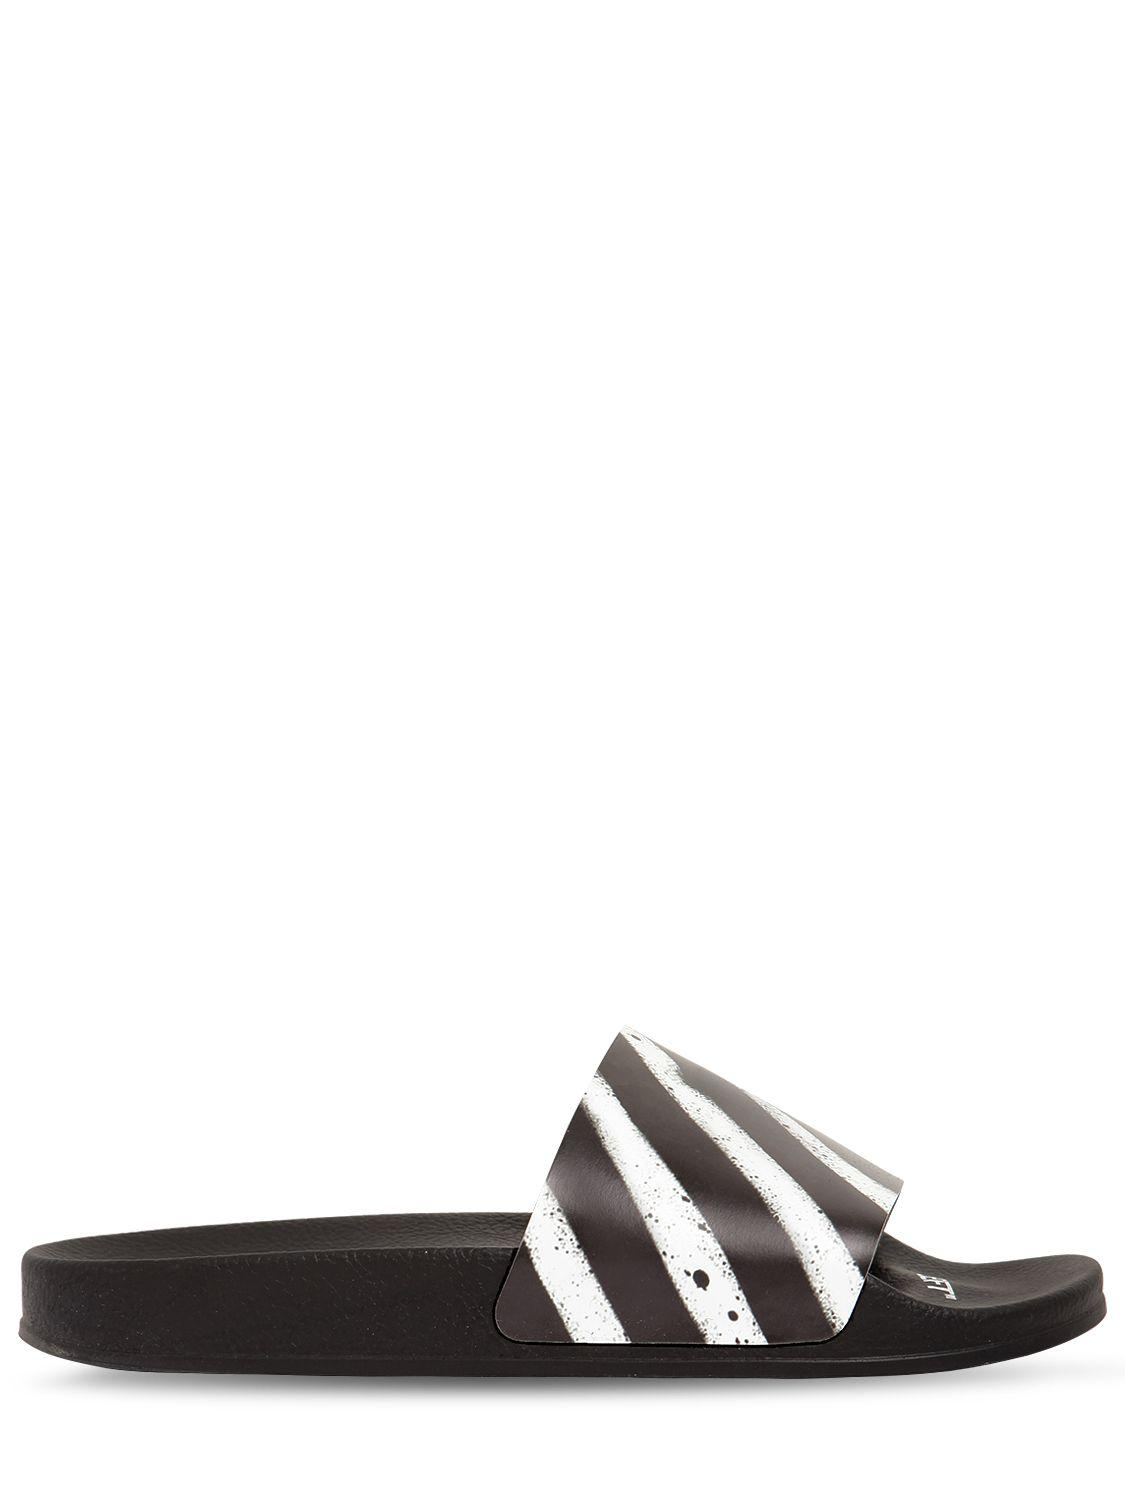 f269901c087e Lyst - Off-White c o Virgil Abloh Spray Stripes Slide Sandals in Black for  Men - Save 6%